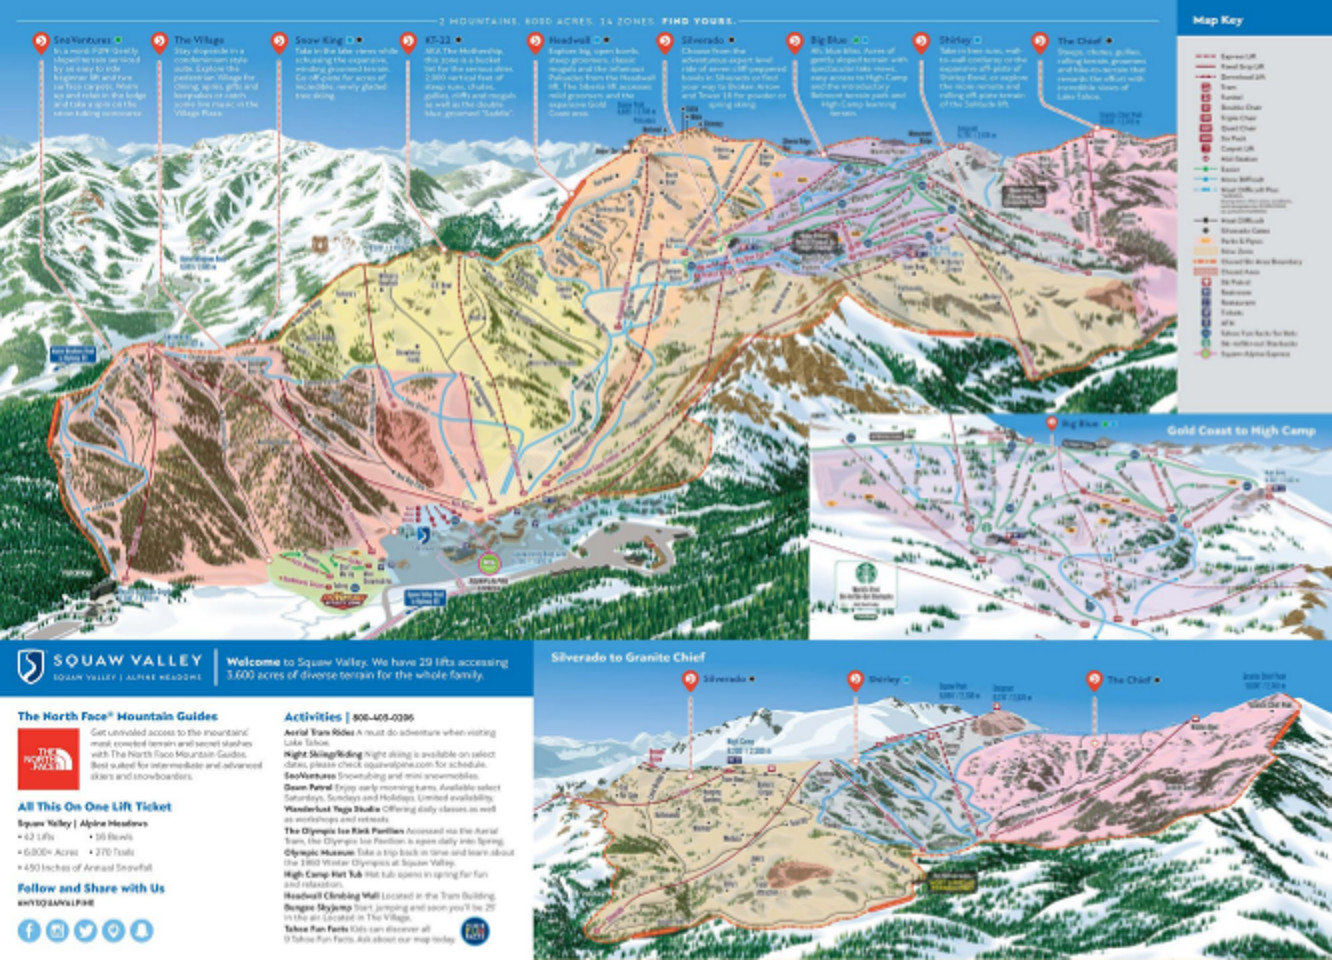 Squaw Valley Ski Resort Guide Location Map Squaw Valley Ski - Us map of ski resorts